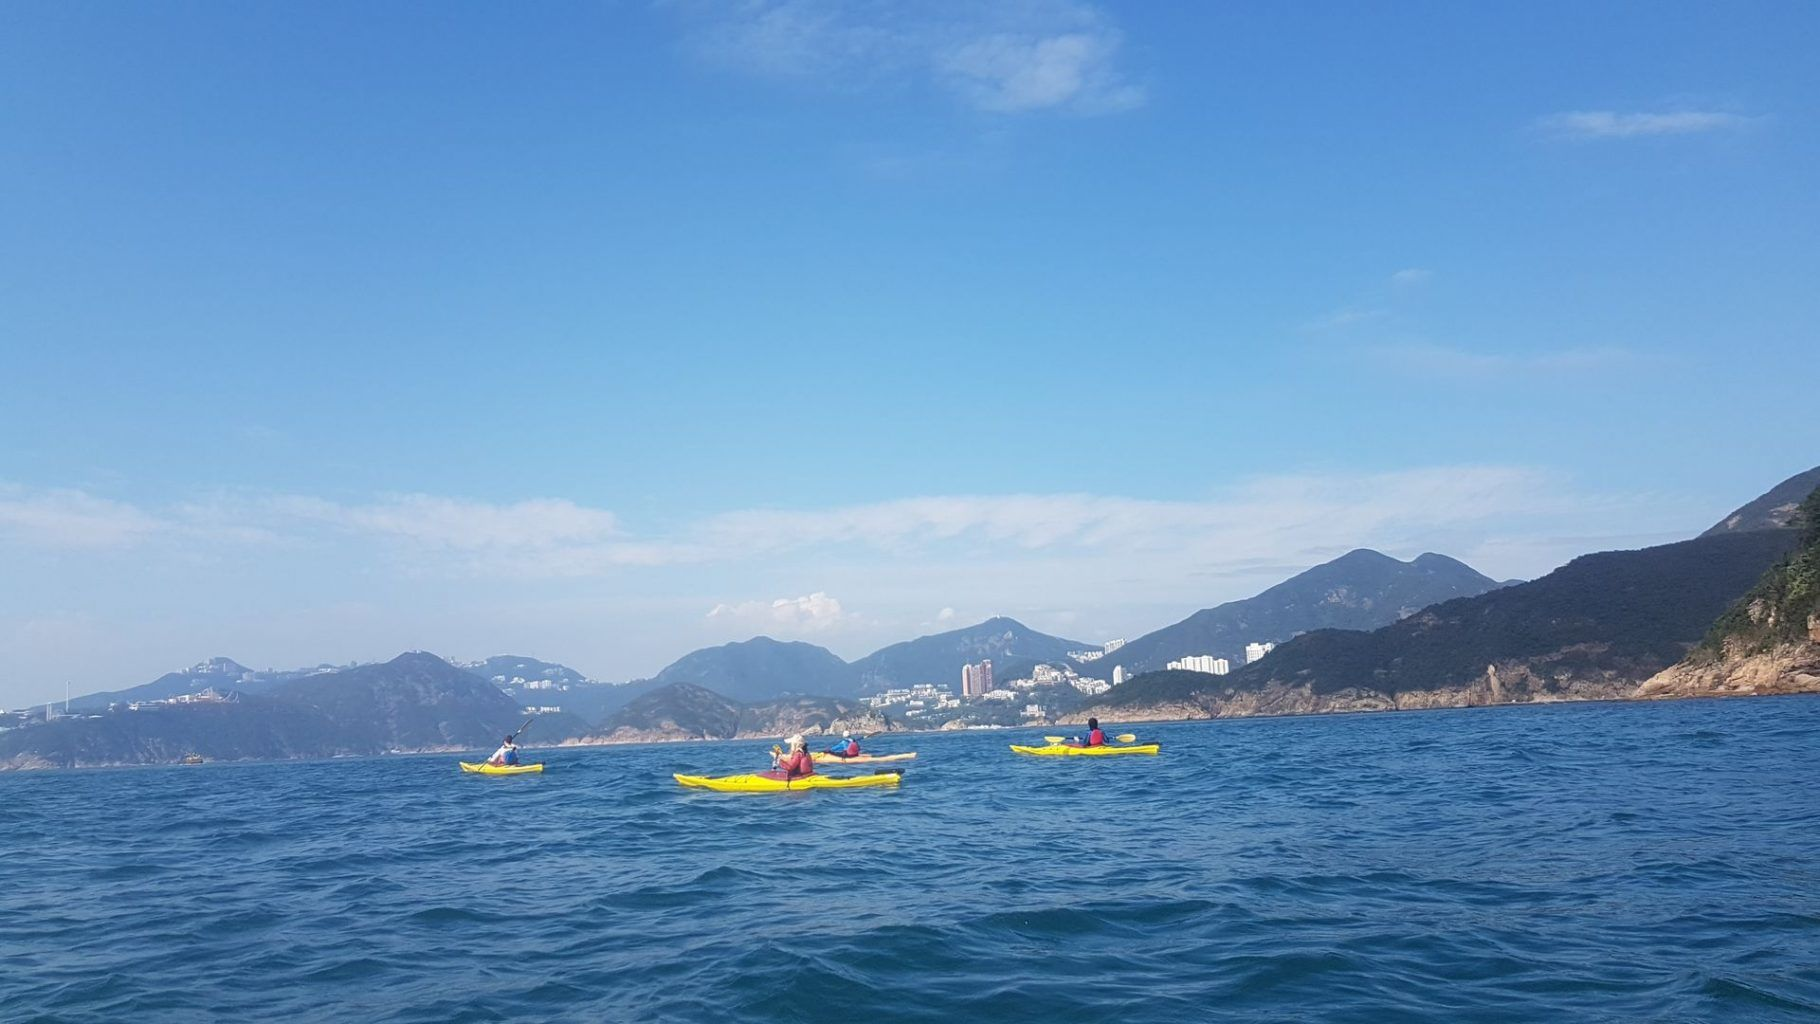 20 Jan 2019 sea kayakhong hong kong to lamma island 56